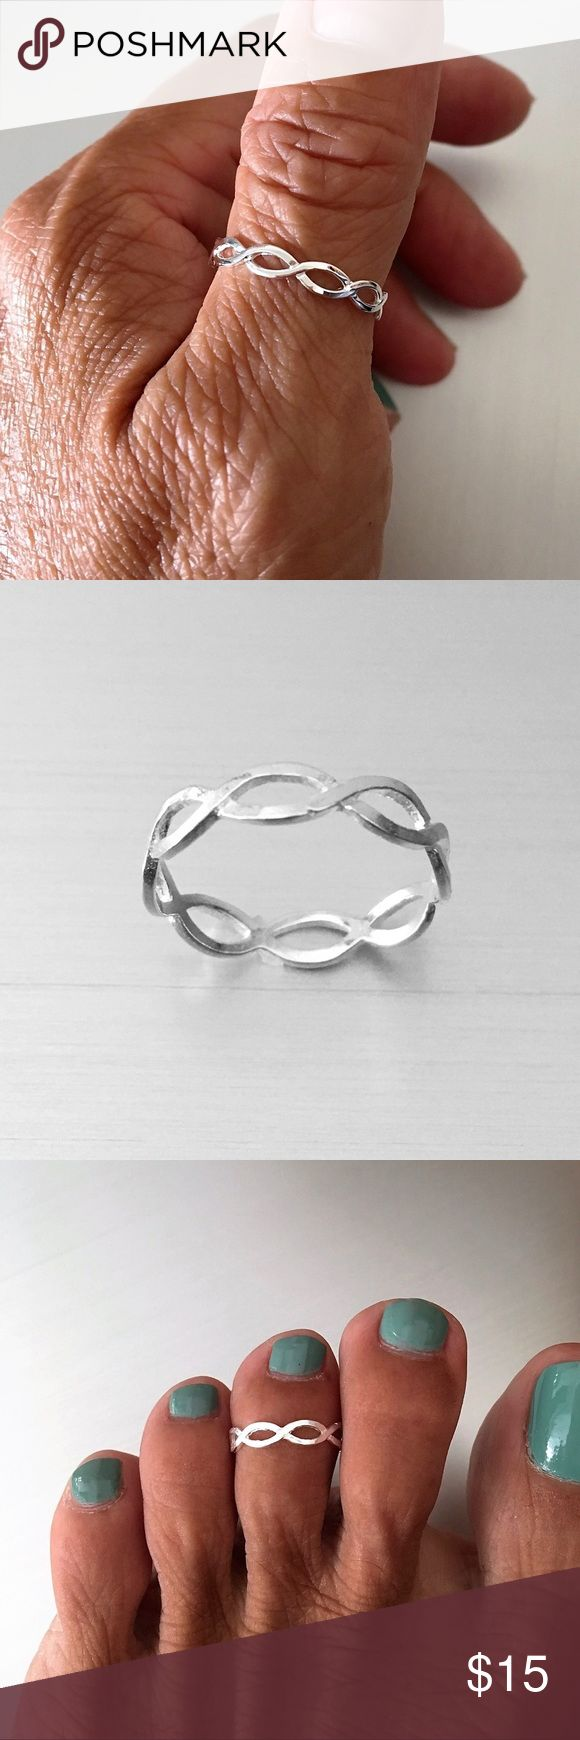 Sterling Silver One Thin Braid Ring Sterling Silver One Thin Braid Ring, Toe Ring, Midi Ring, Pinky Ring, Index Ring, Thumb Ring, Stackable Ring, 925 Sterling Silver, Face Height 3 mm (0.13 inch), PLEASE VISIT MY SITE indigoandjade.com Jewelry Rings